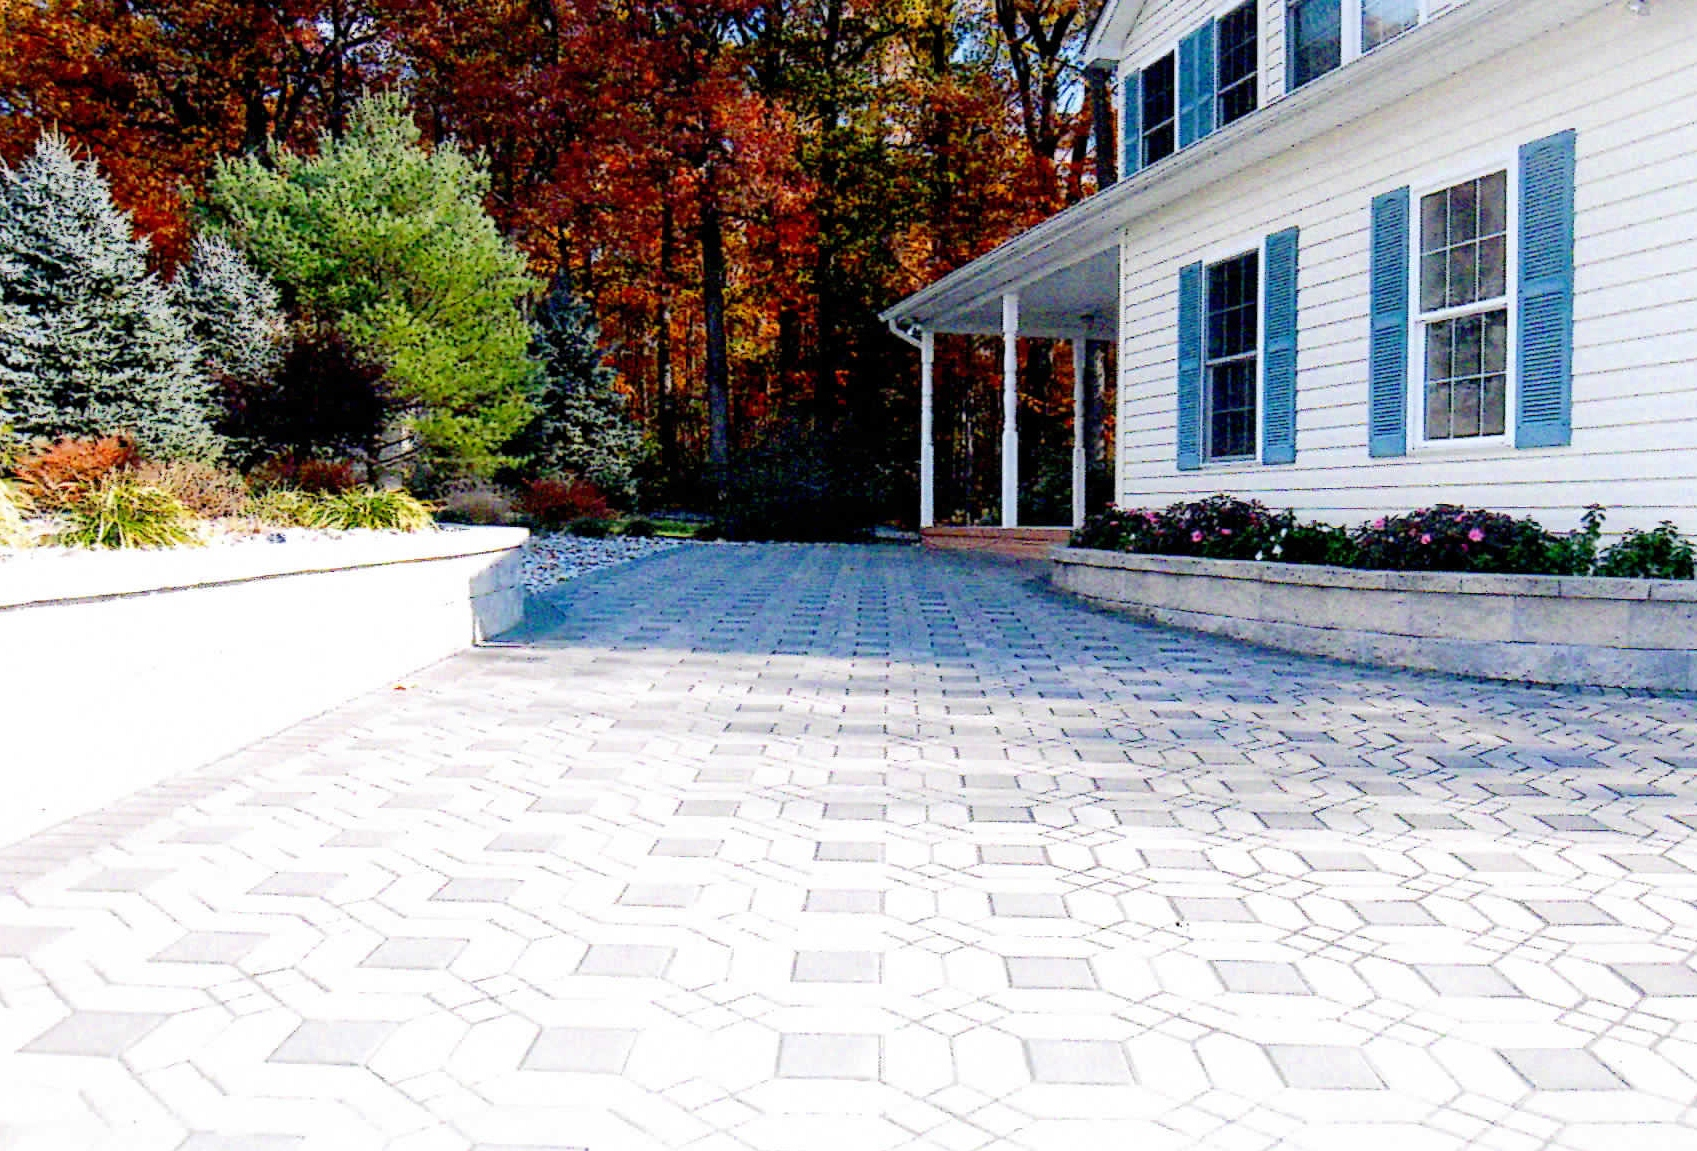 Paver patio with sitting walls